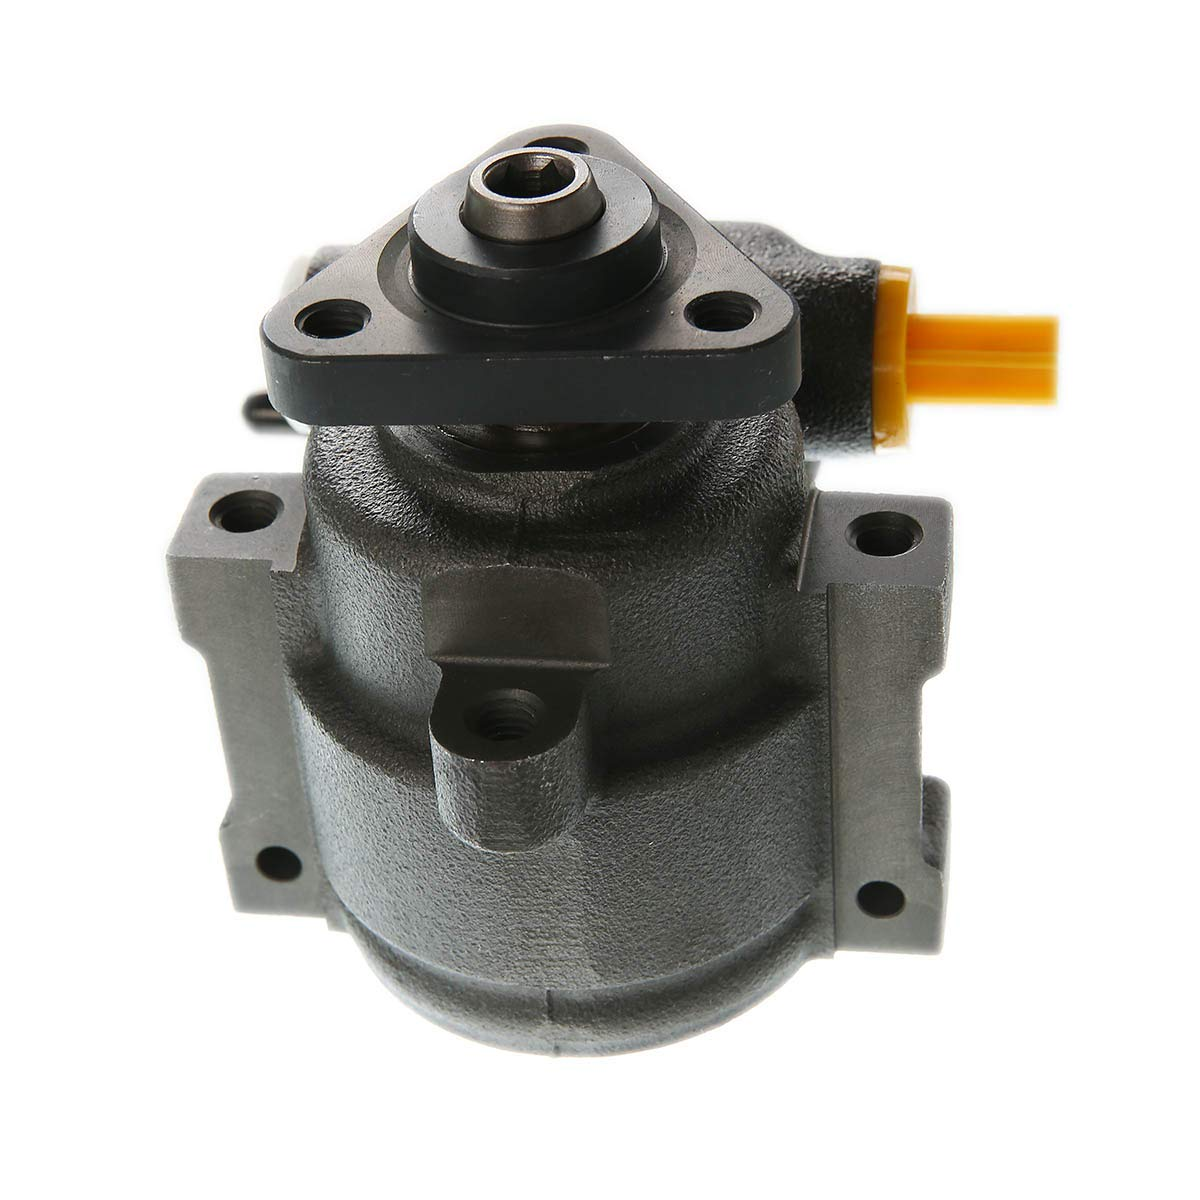 A-Premium Power Steering Pump Without Reservoir Compatible with Ford Escort 1997-2002 Mercury Tracer 1997-1999